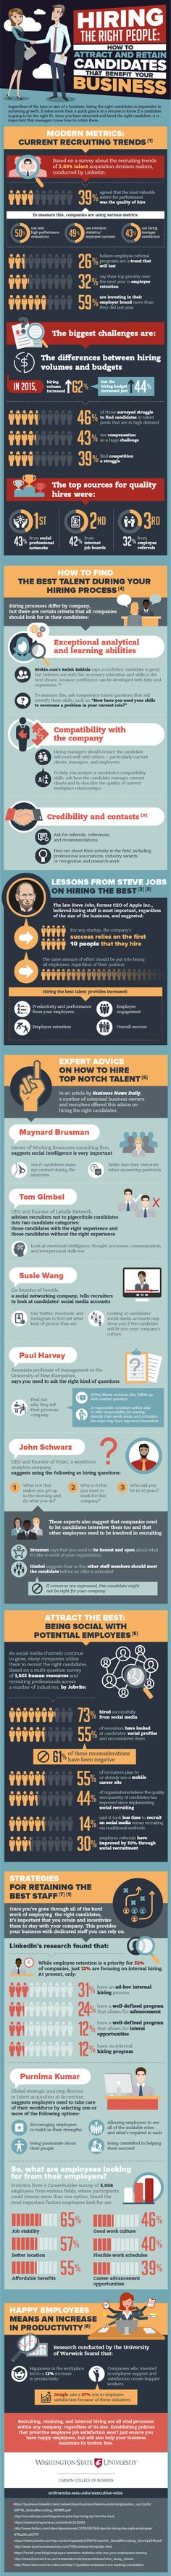 Hiring the Right People #Infographic #Business #Career #Hiring